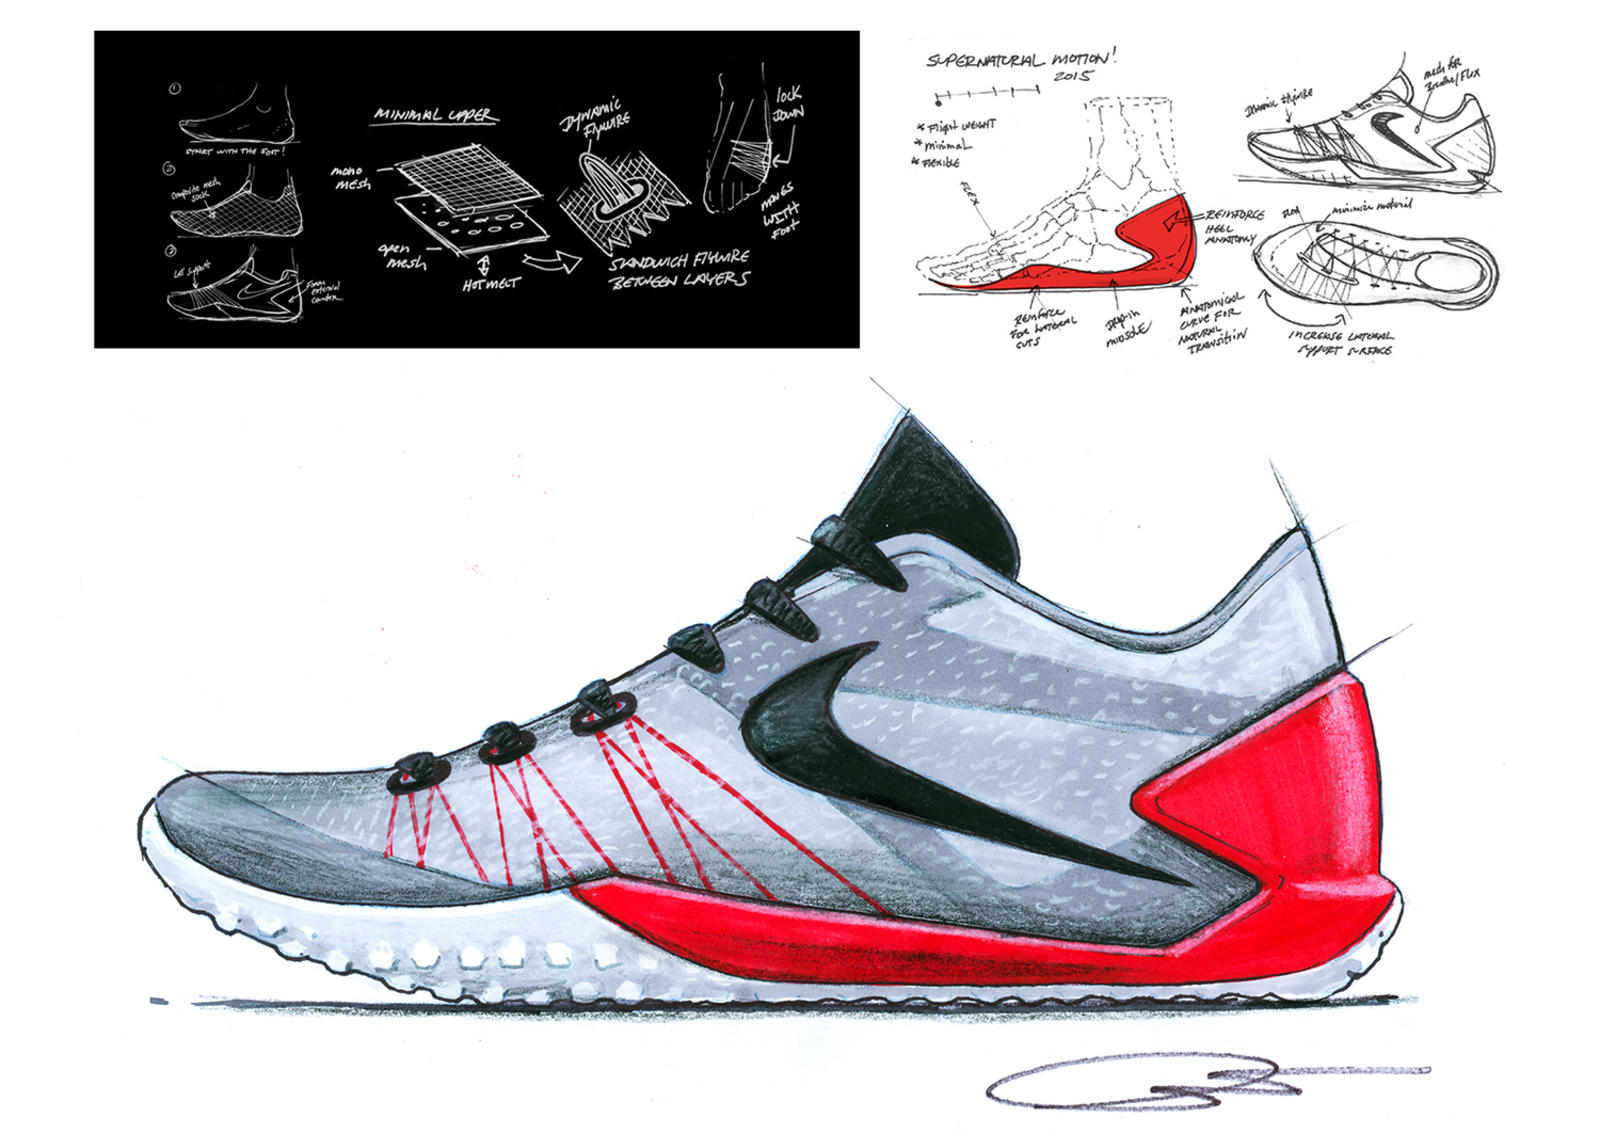 Min perder Edición  Introducing the Nike Hyperchase Basketball Shoe for Playmakers like James  Harden - Nike News